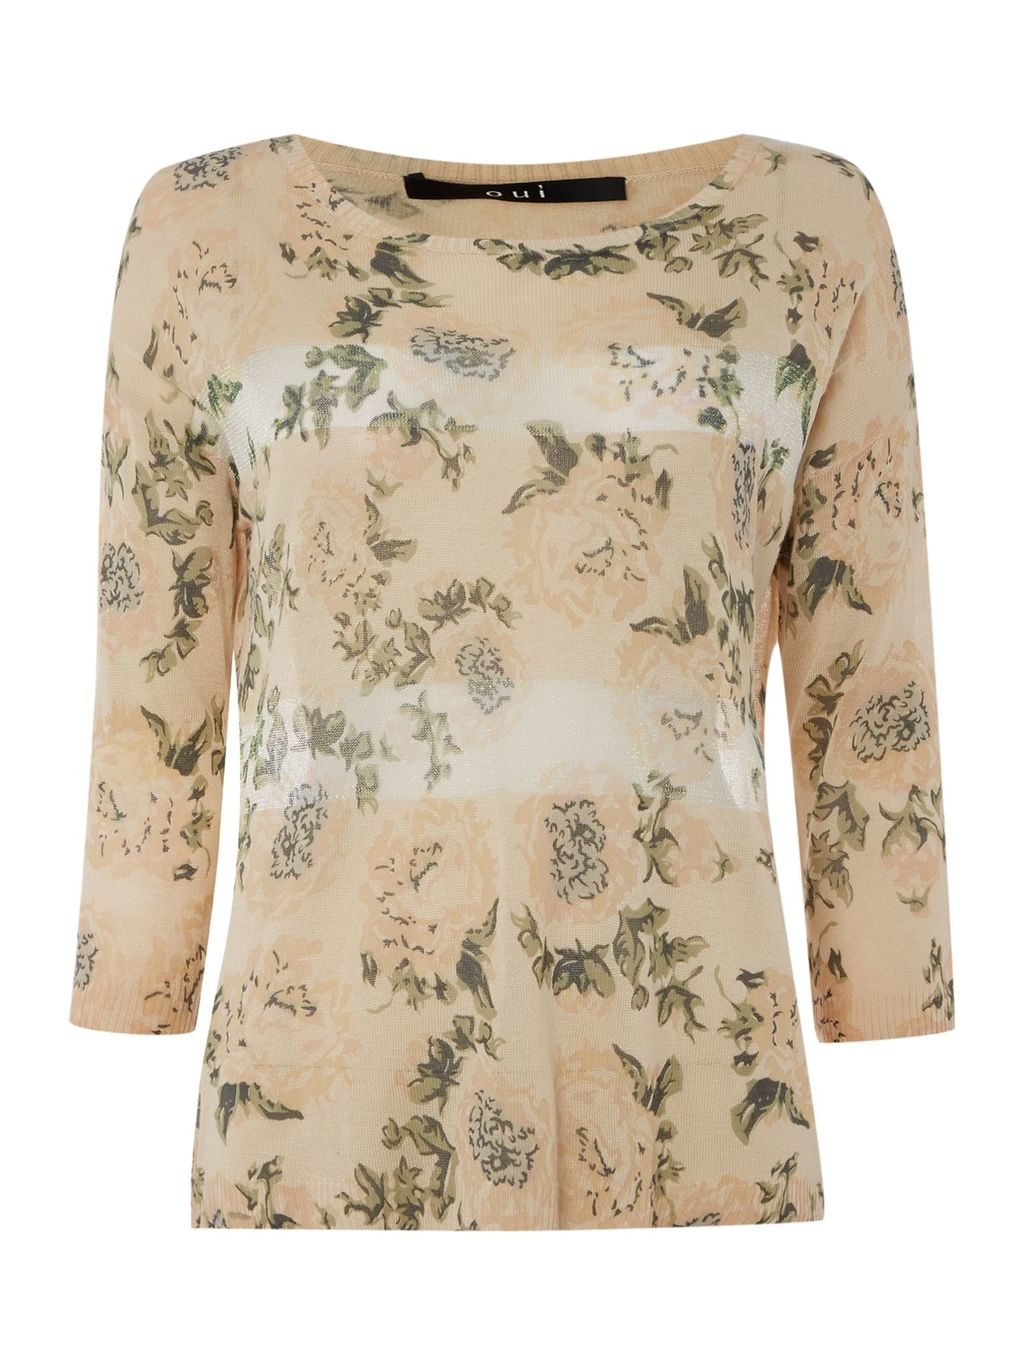 Floral Stripe Jumper, Multi Coloured - neckline: round neck; style: standard; predominant colour: nude; secondary colour: mid grey; occasions: casual; length: standard; fit: slim fit; sleeve length: long sleeve; sleeve style: standard; pattern type: fabric; pattern: florals; texture group: jersey - stretchy/drapey; fibres: viscose/rayon - mix; multicoloured: multicoloured; season: s/s 2016; wardrobe: highlight